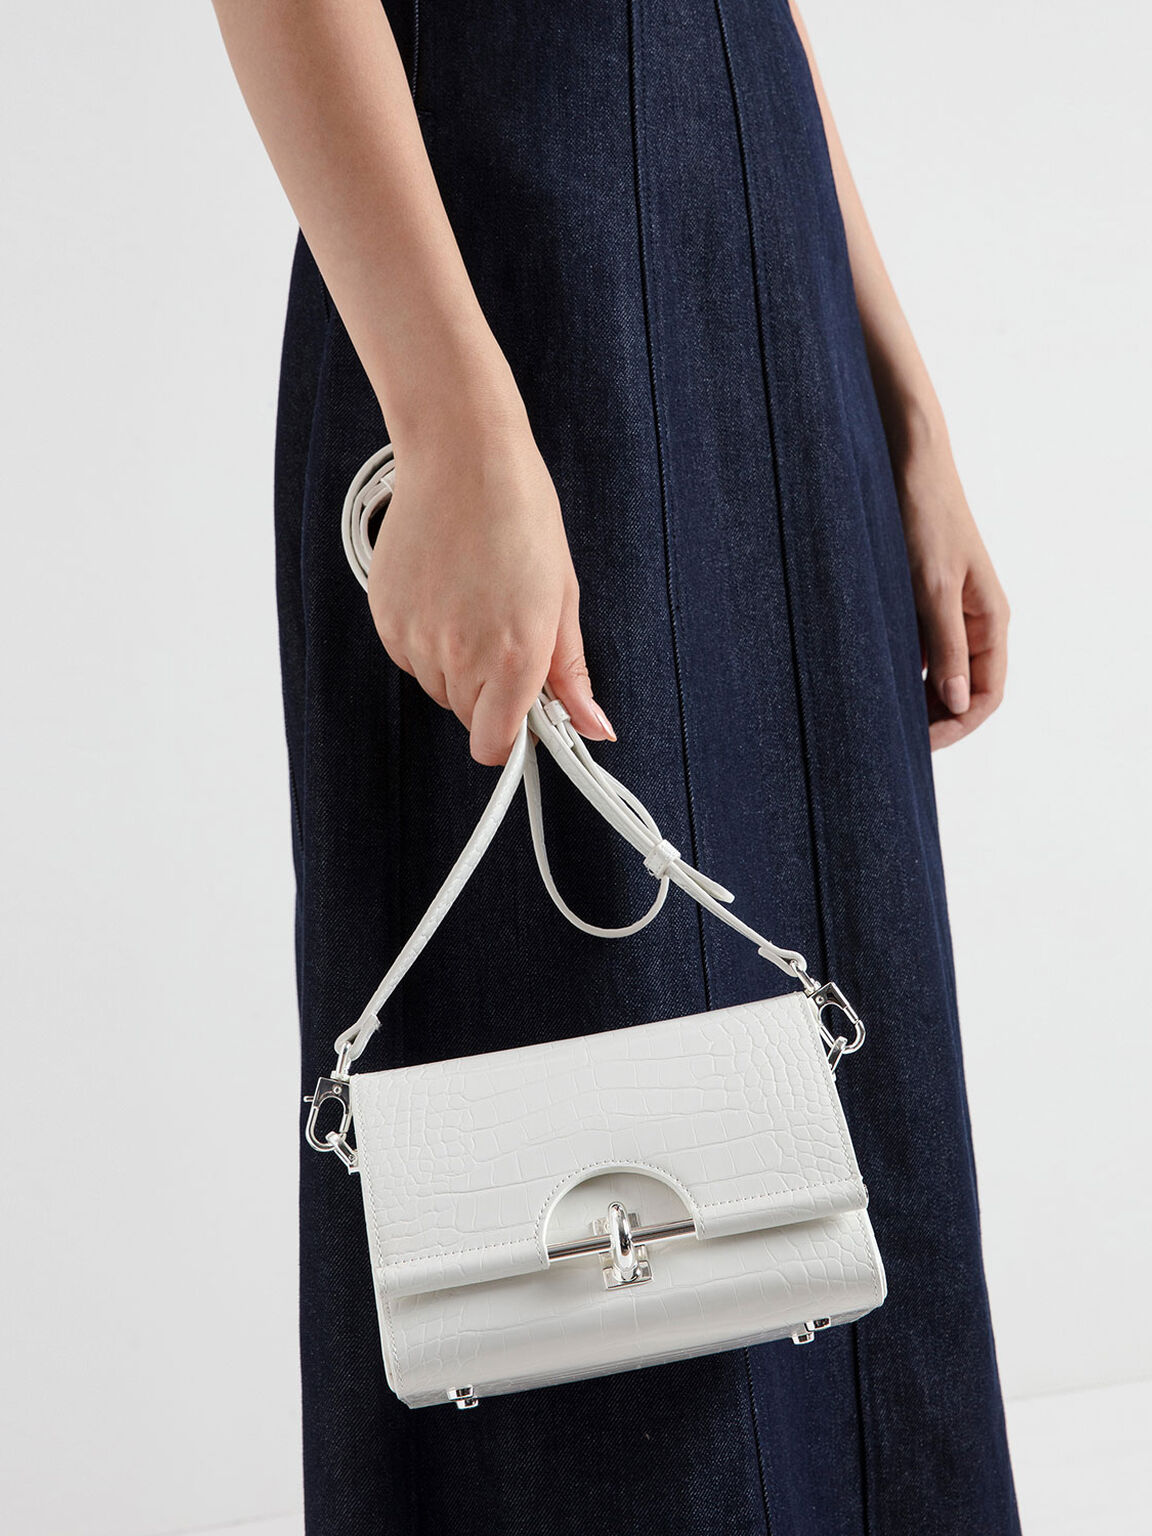 Croc-Effect Turn Lock Bag, White, hi-res